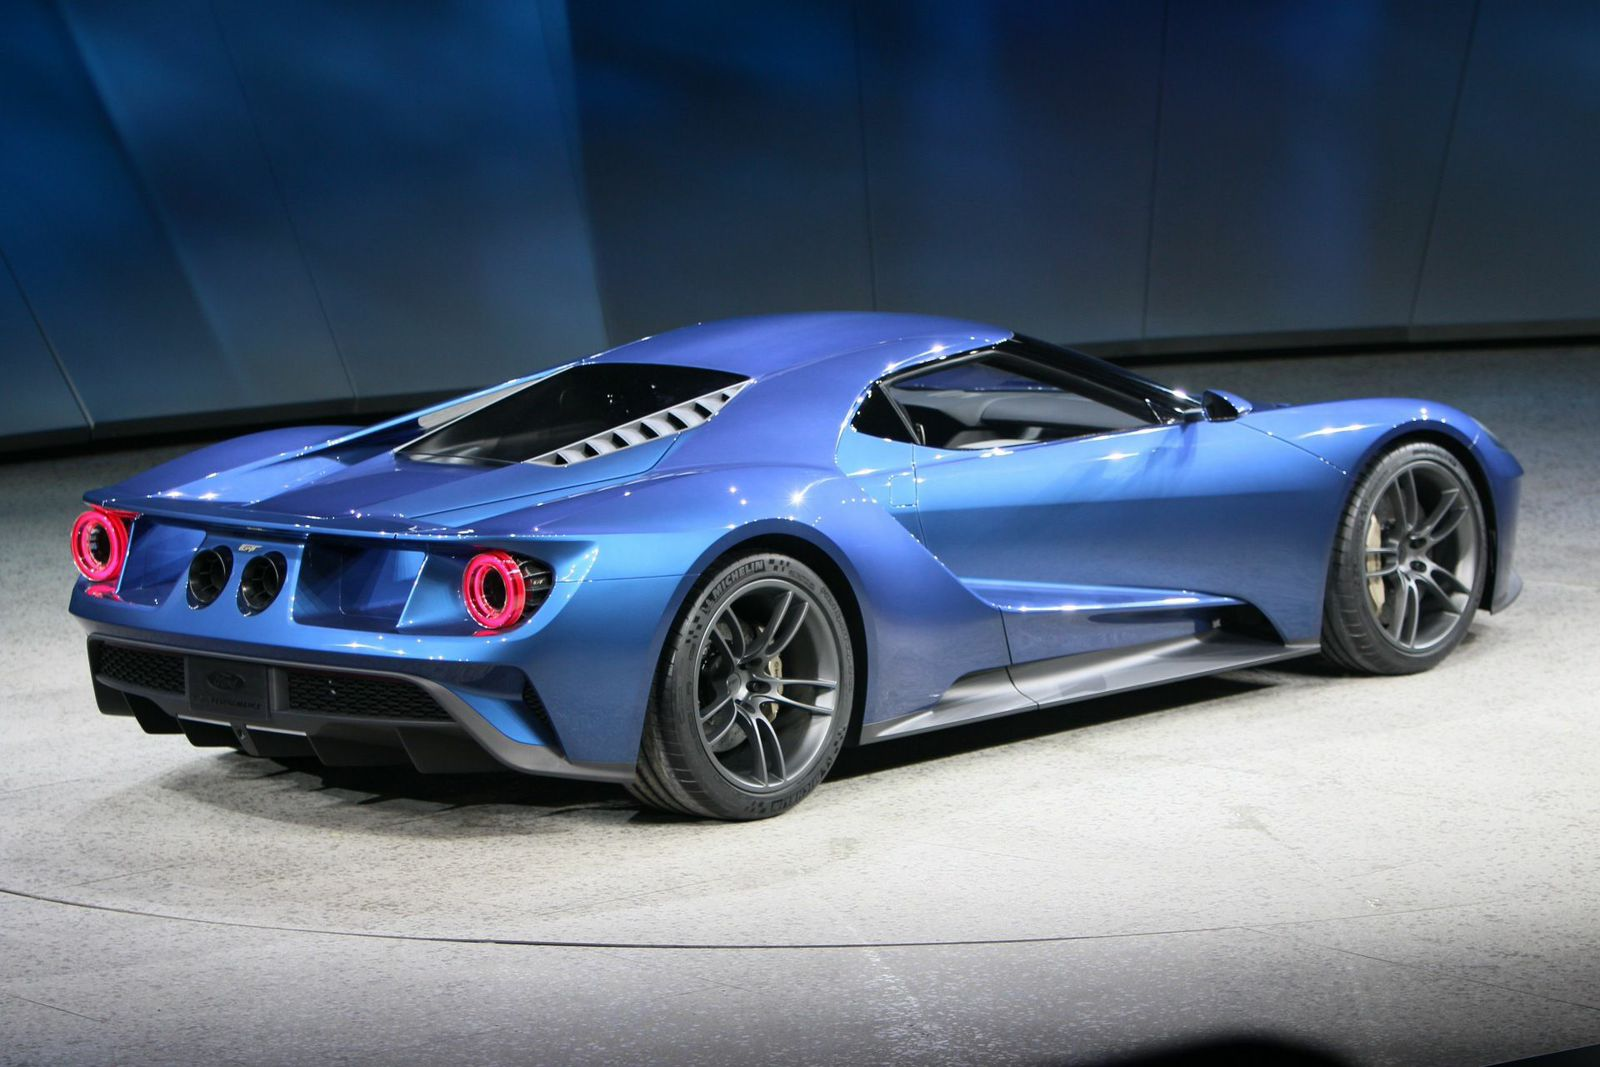 Onallcylinders ford unveils 600 hp twin turbo ecoboost v6 gt supercar at detroit auto show